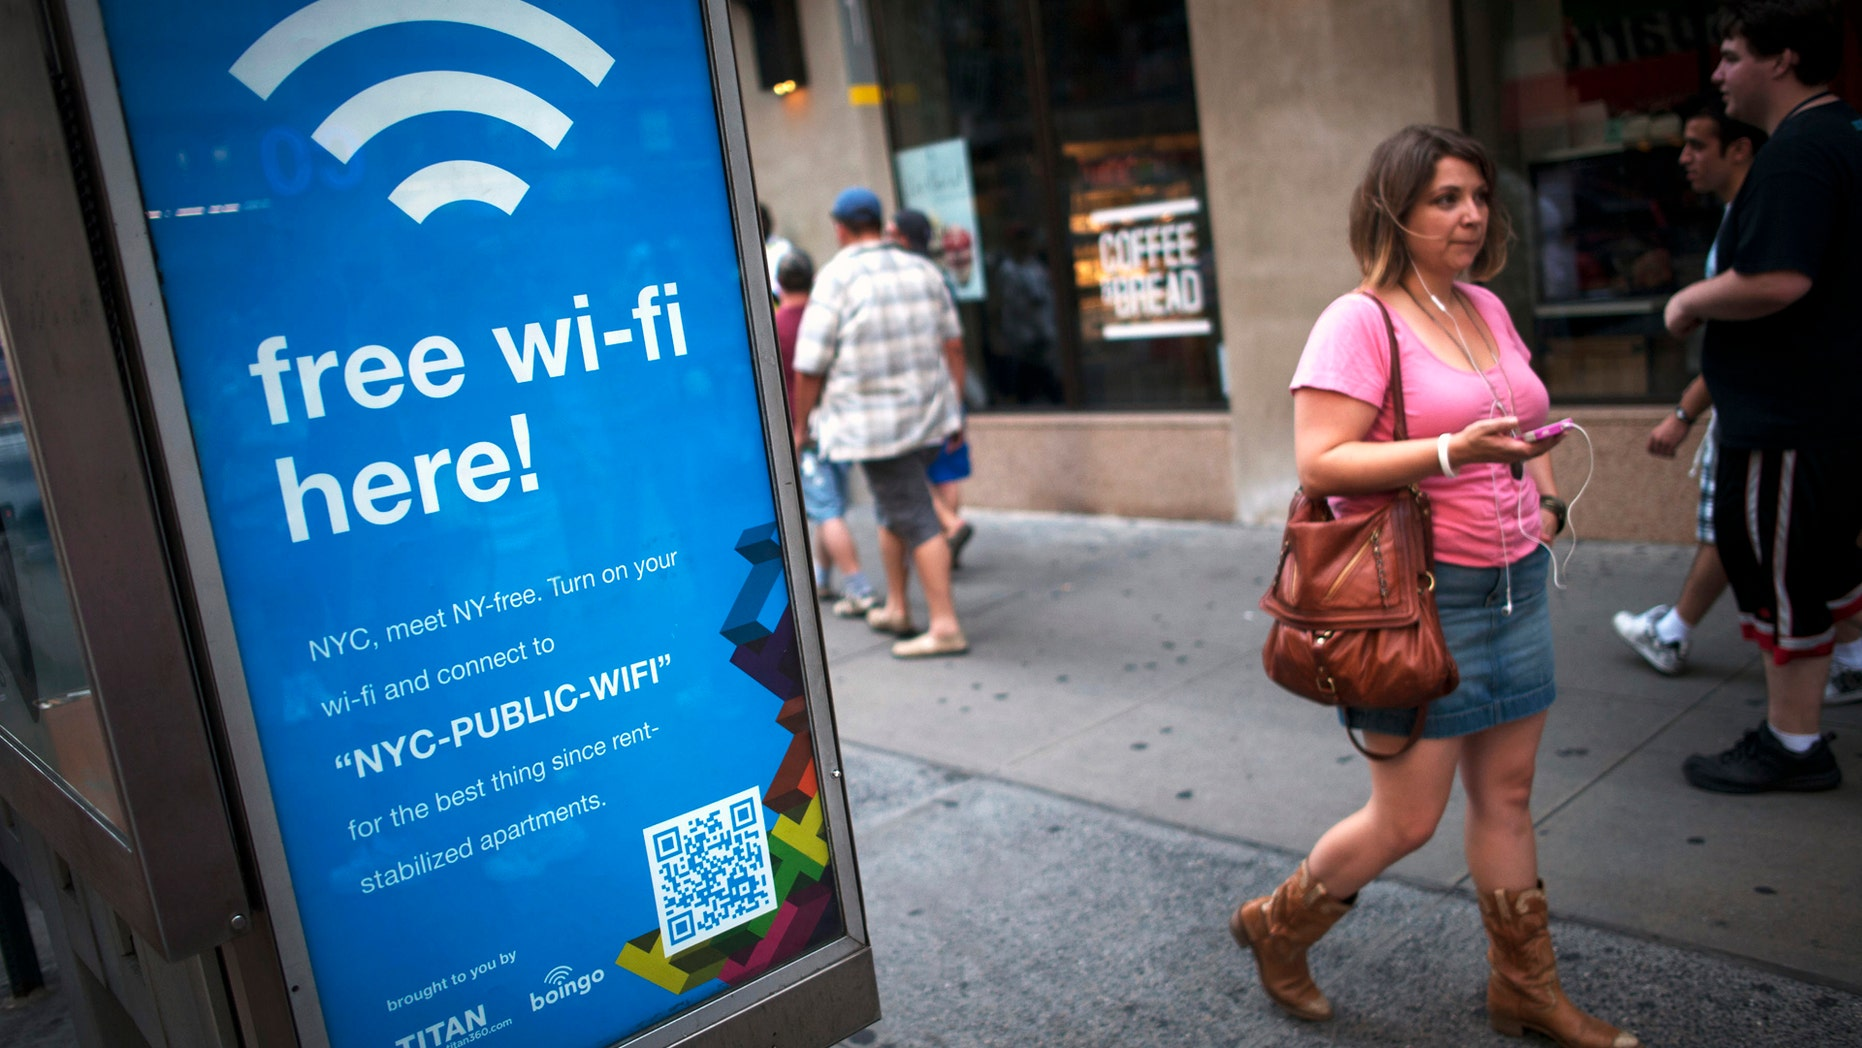 File photo: A woman walks past a WiFi-enabled phone booth in New York July 12, 2012. (REUTERS/Keith Bedford)